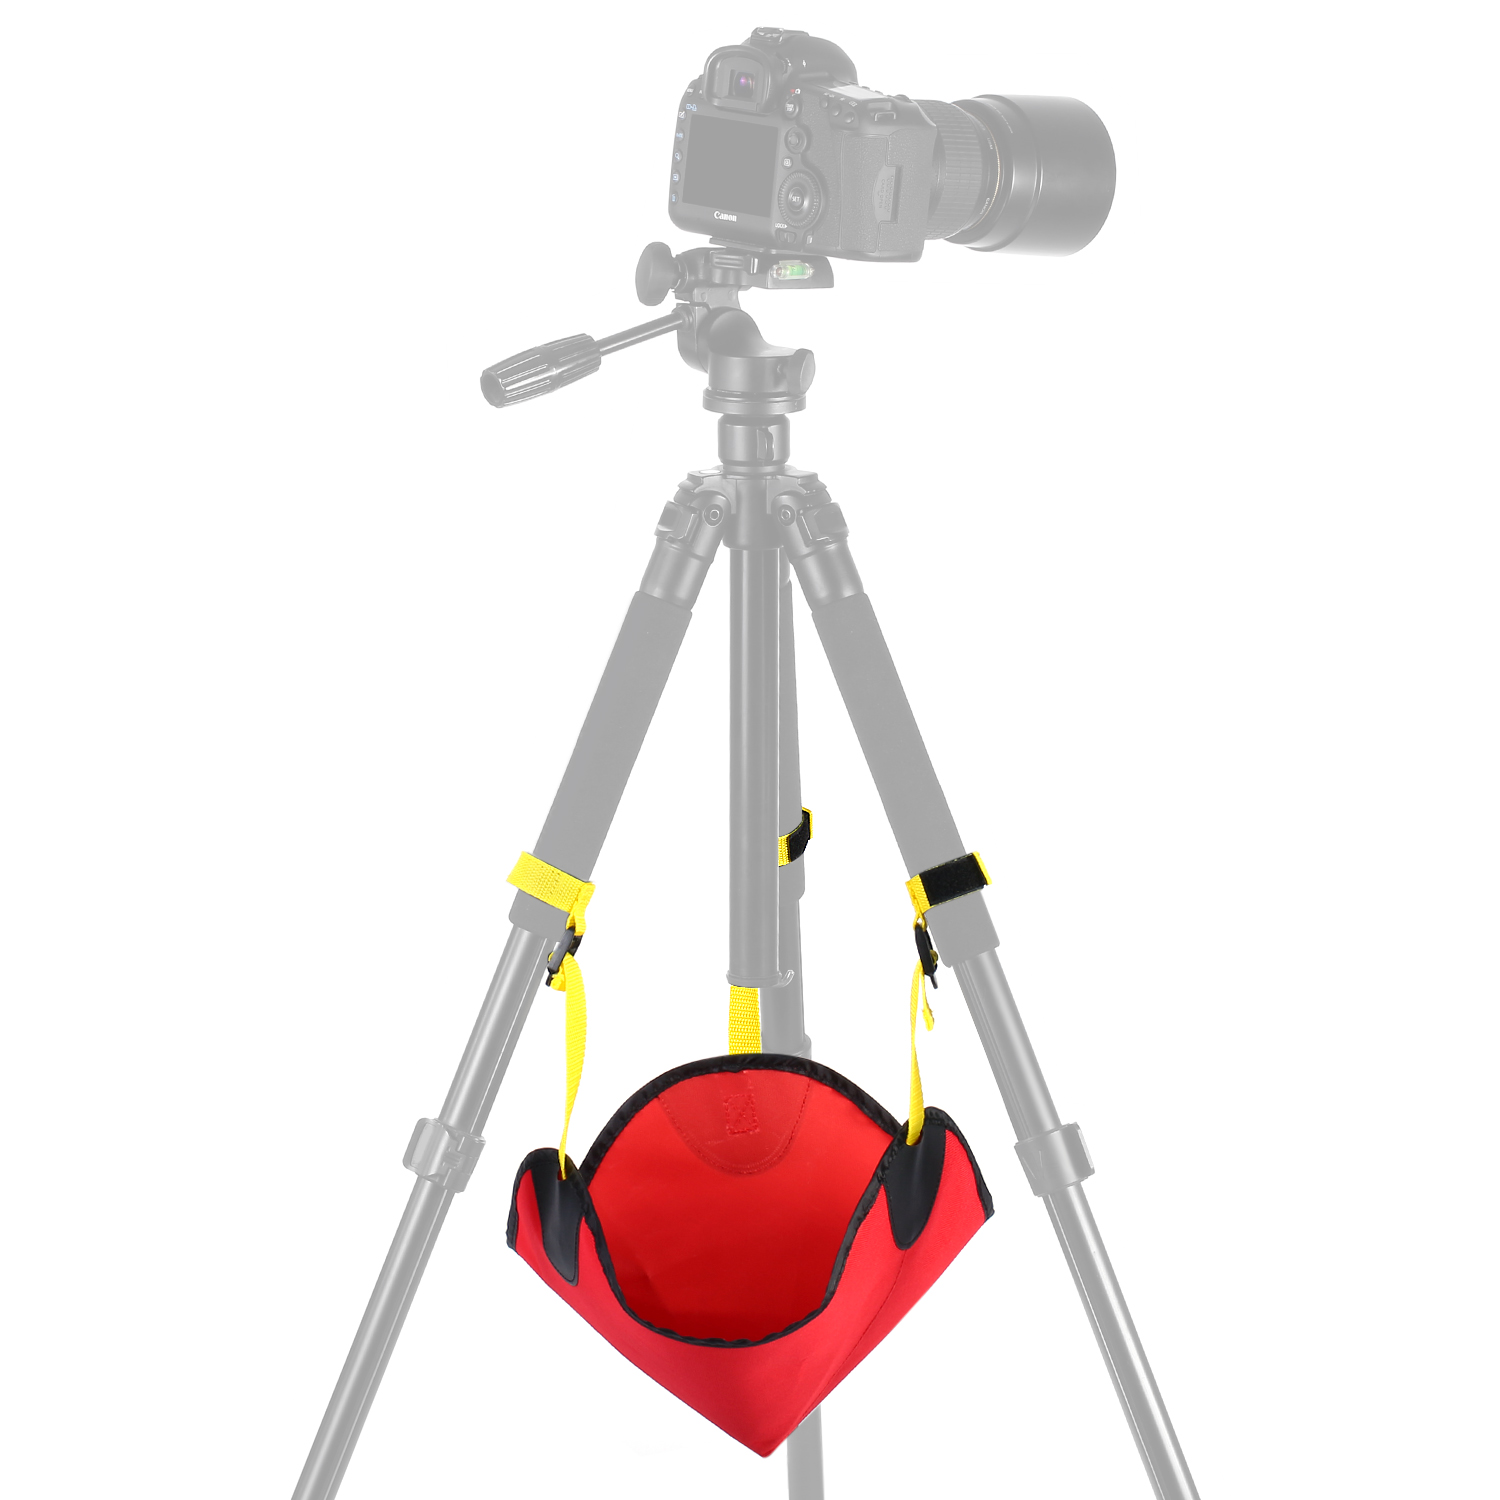 Boom Stand and Tripod Neewer Black Heavy Duty Photographic Studio Video SandBag for Universal Light Stands